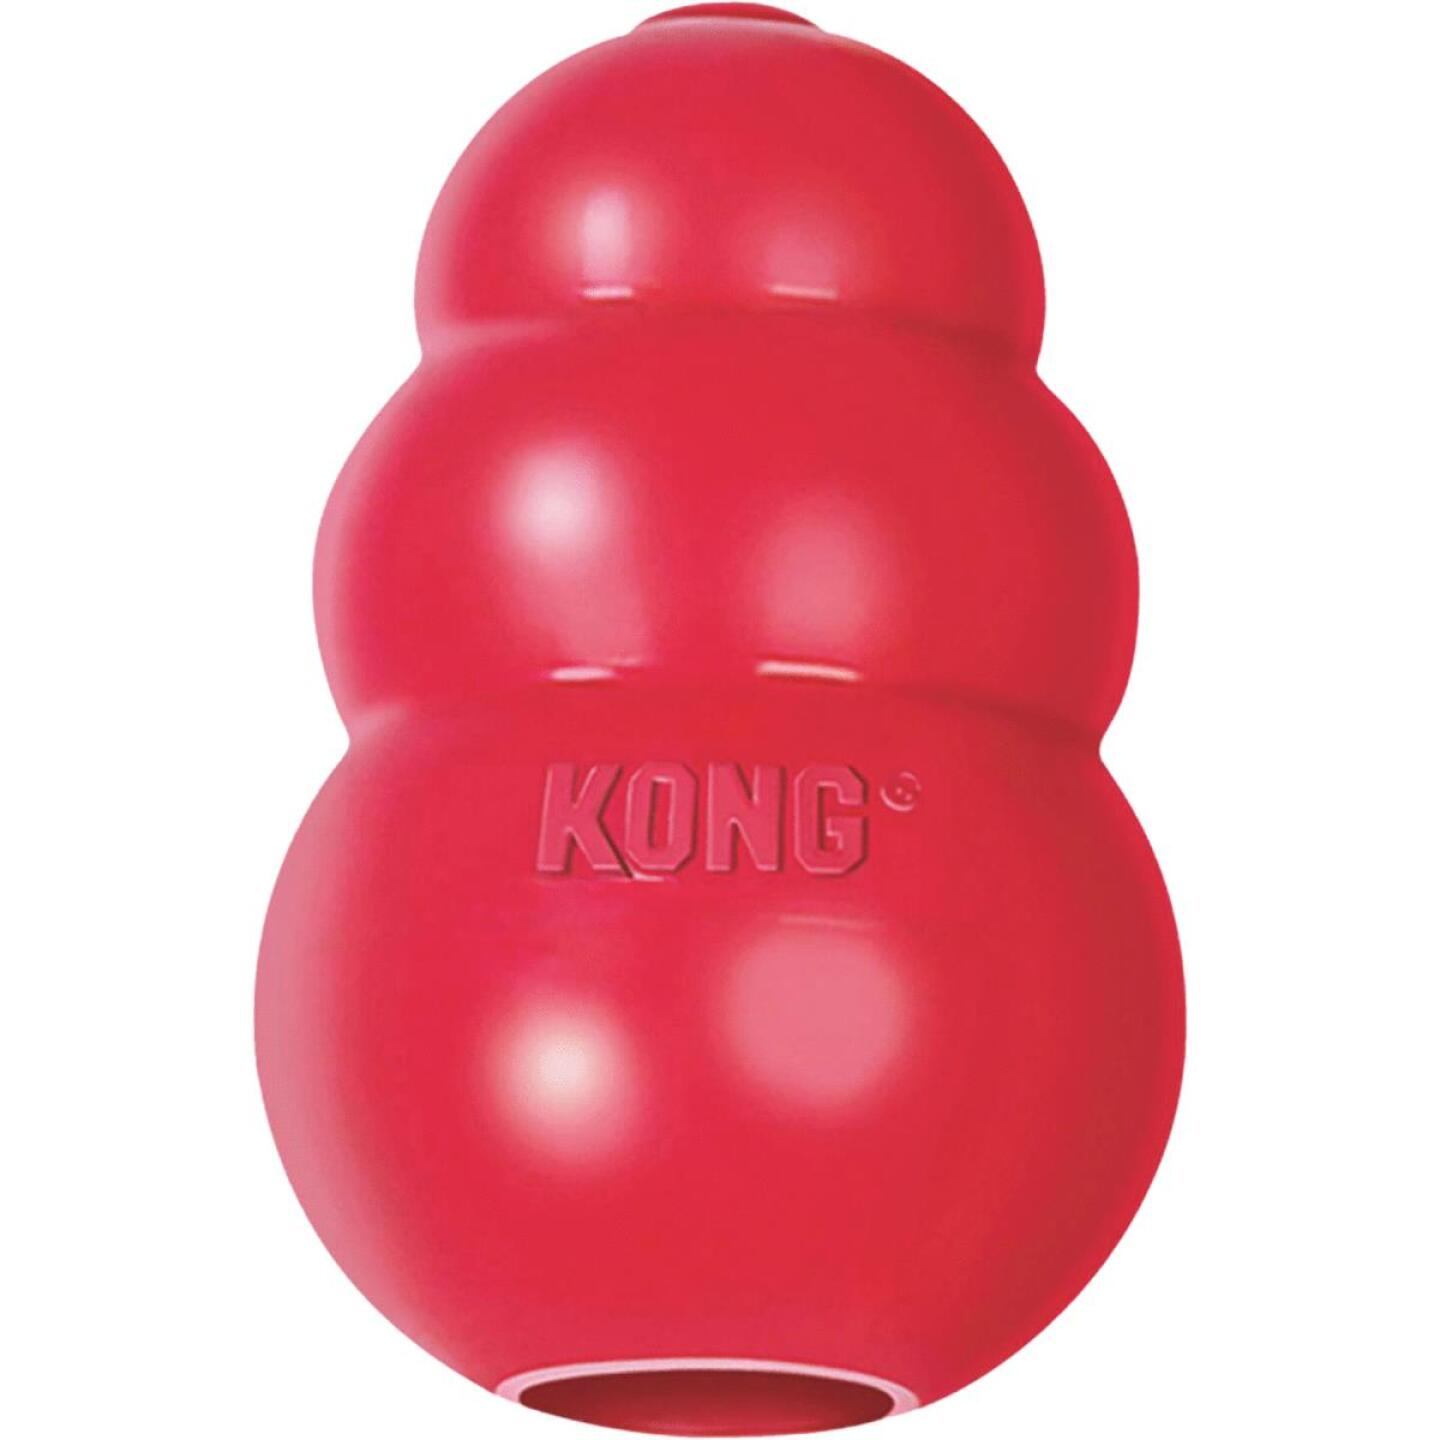 Kong Classic Dog Chew Toy, Up to 20 Lb. Image 2